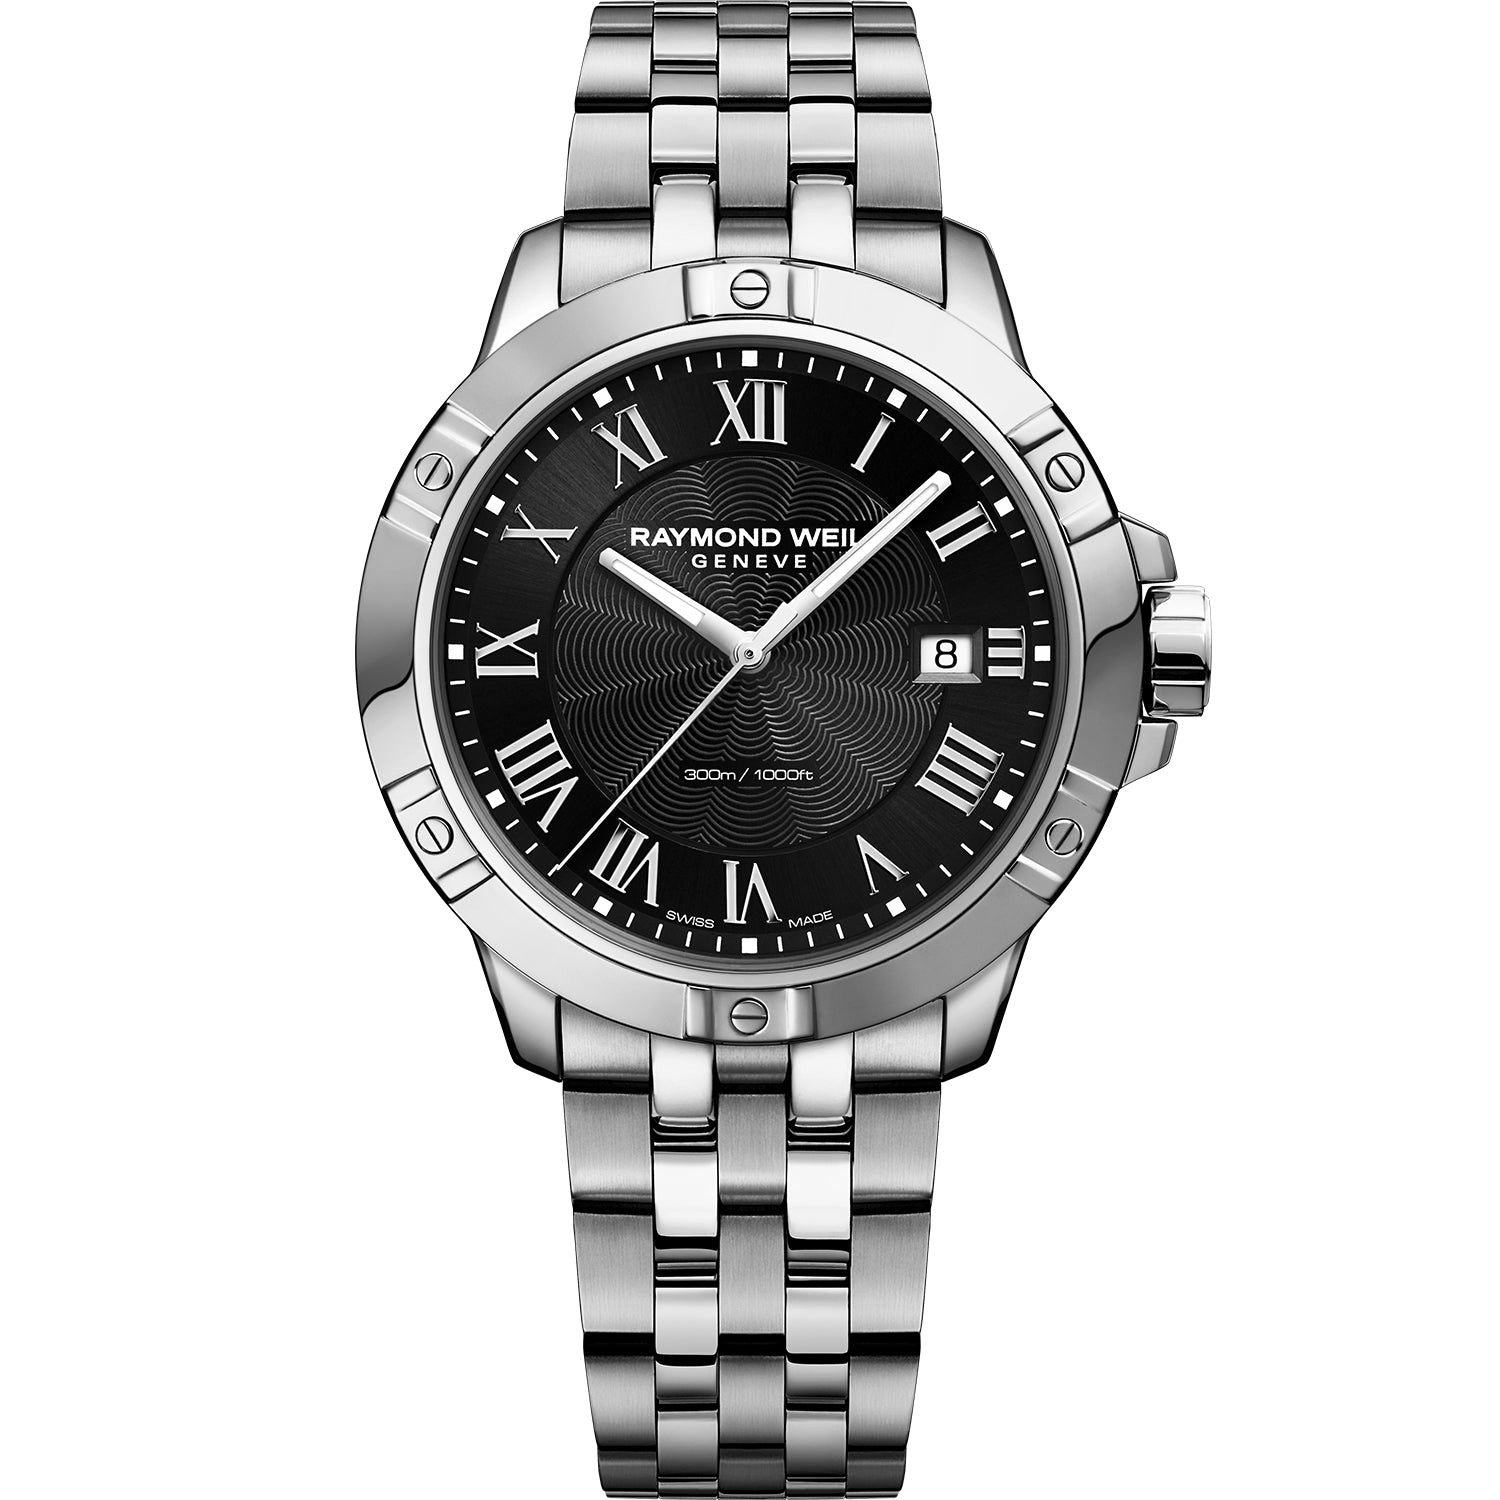 Tango Classic Men's Quartz Black Steel Bracelet Watch 8160-ST-00208